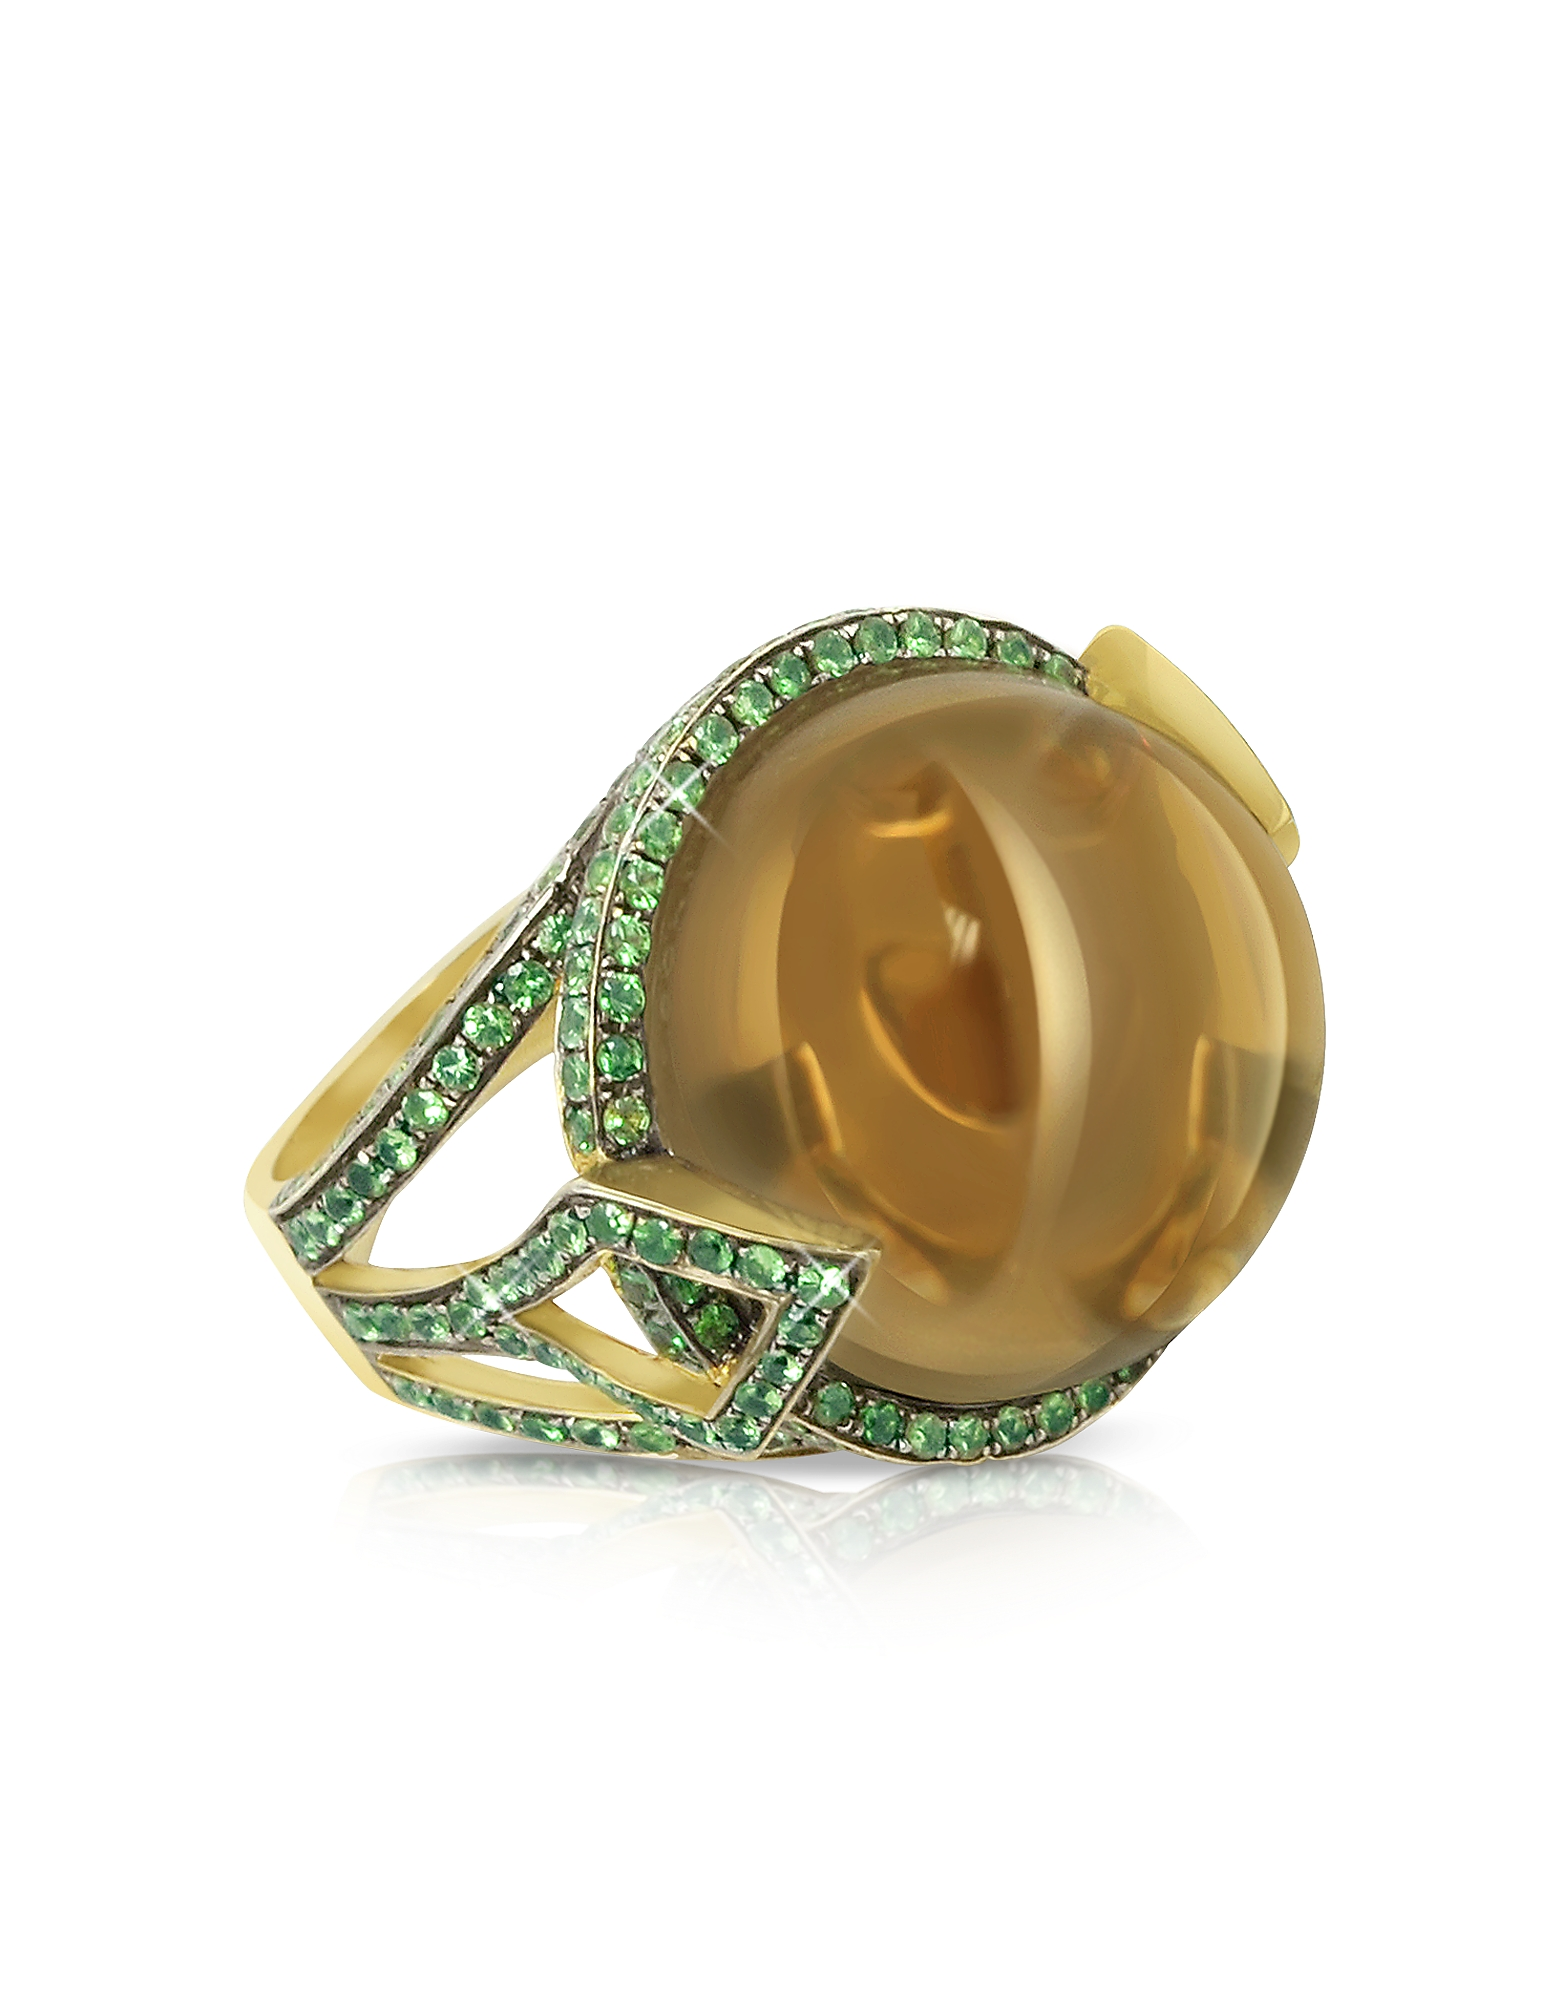 Sho London Rings, 18K Gold V-Seal Smoky Quartz Feodora Ring